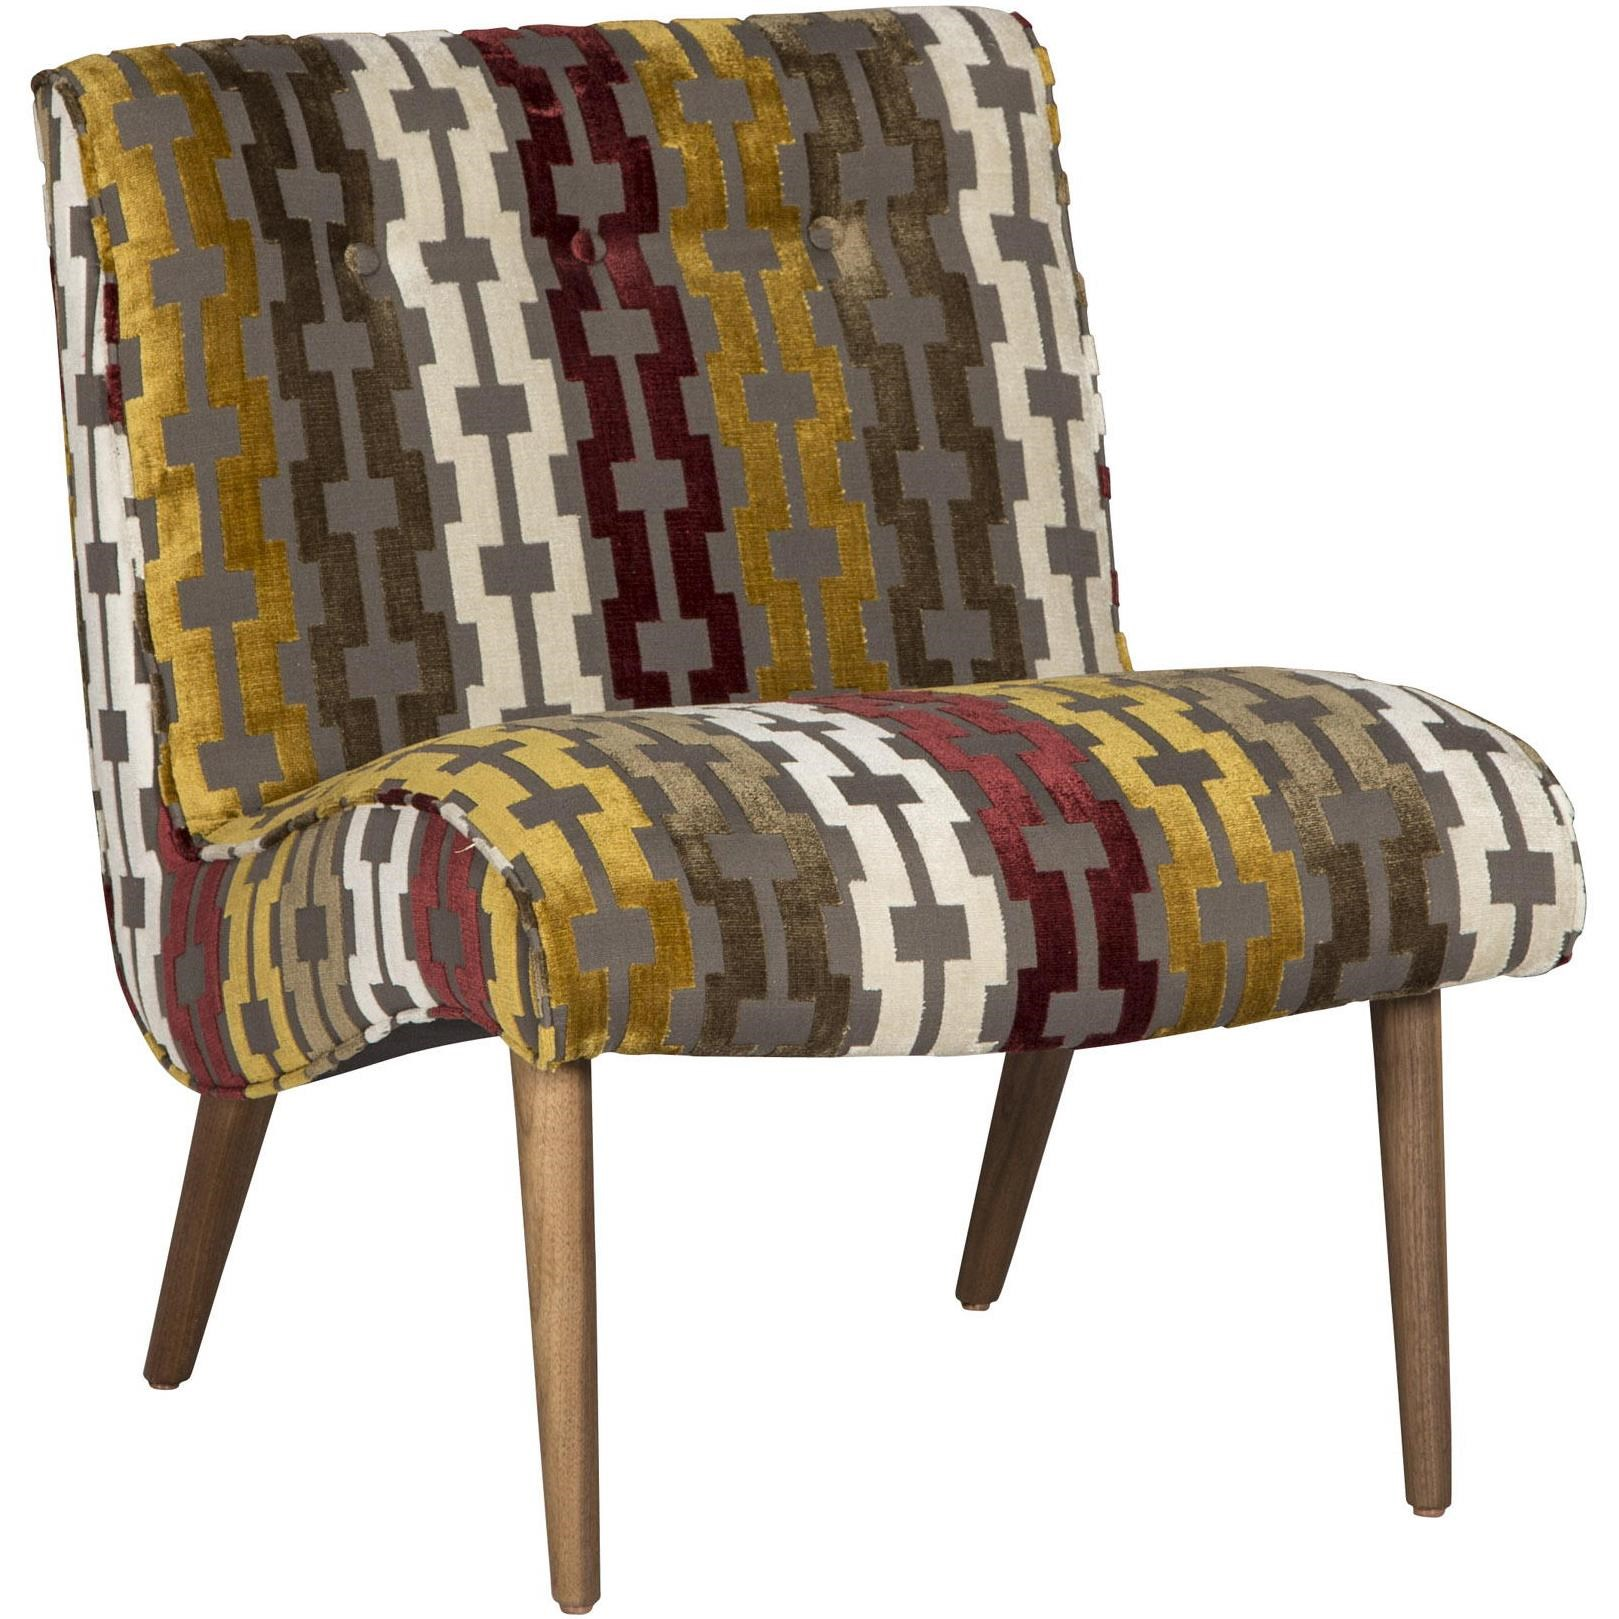 Jonathan Louis AccentuatesForbes Armless Accent Chair